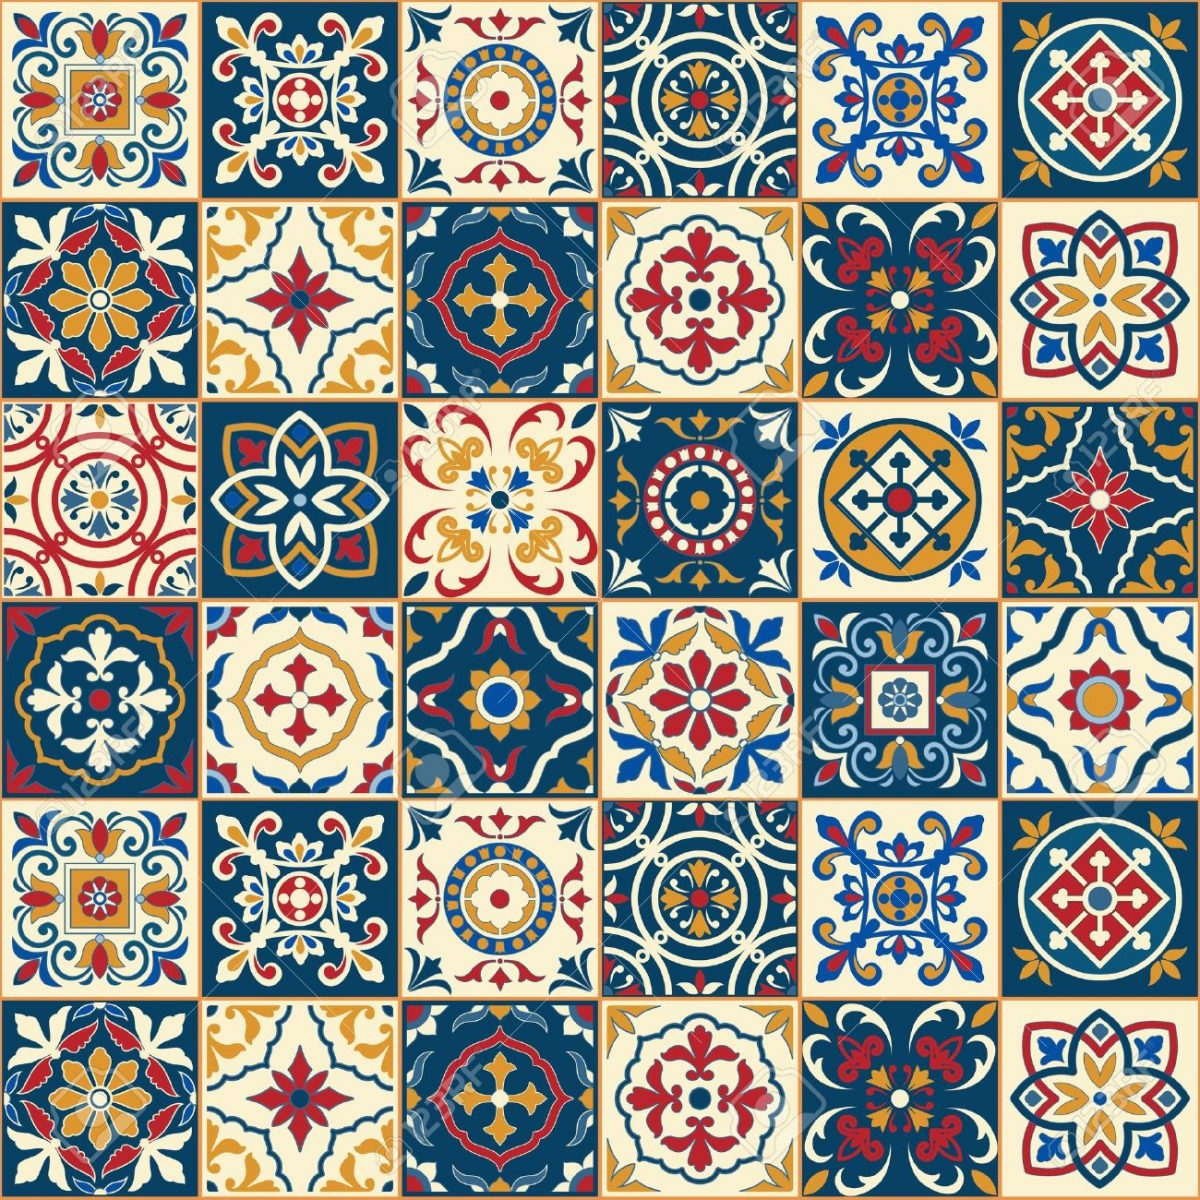 7 LUXURY DAYS IN PORTUGAL portugal 7 LUXURY DAYS IN PORTUGAL 49958011 gorgeous seamless pattern white colorful moroccan portuguese tiles azulejo ornaments can be used for 1 e1566986332326